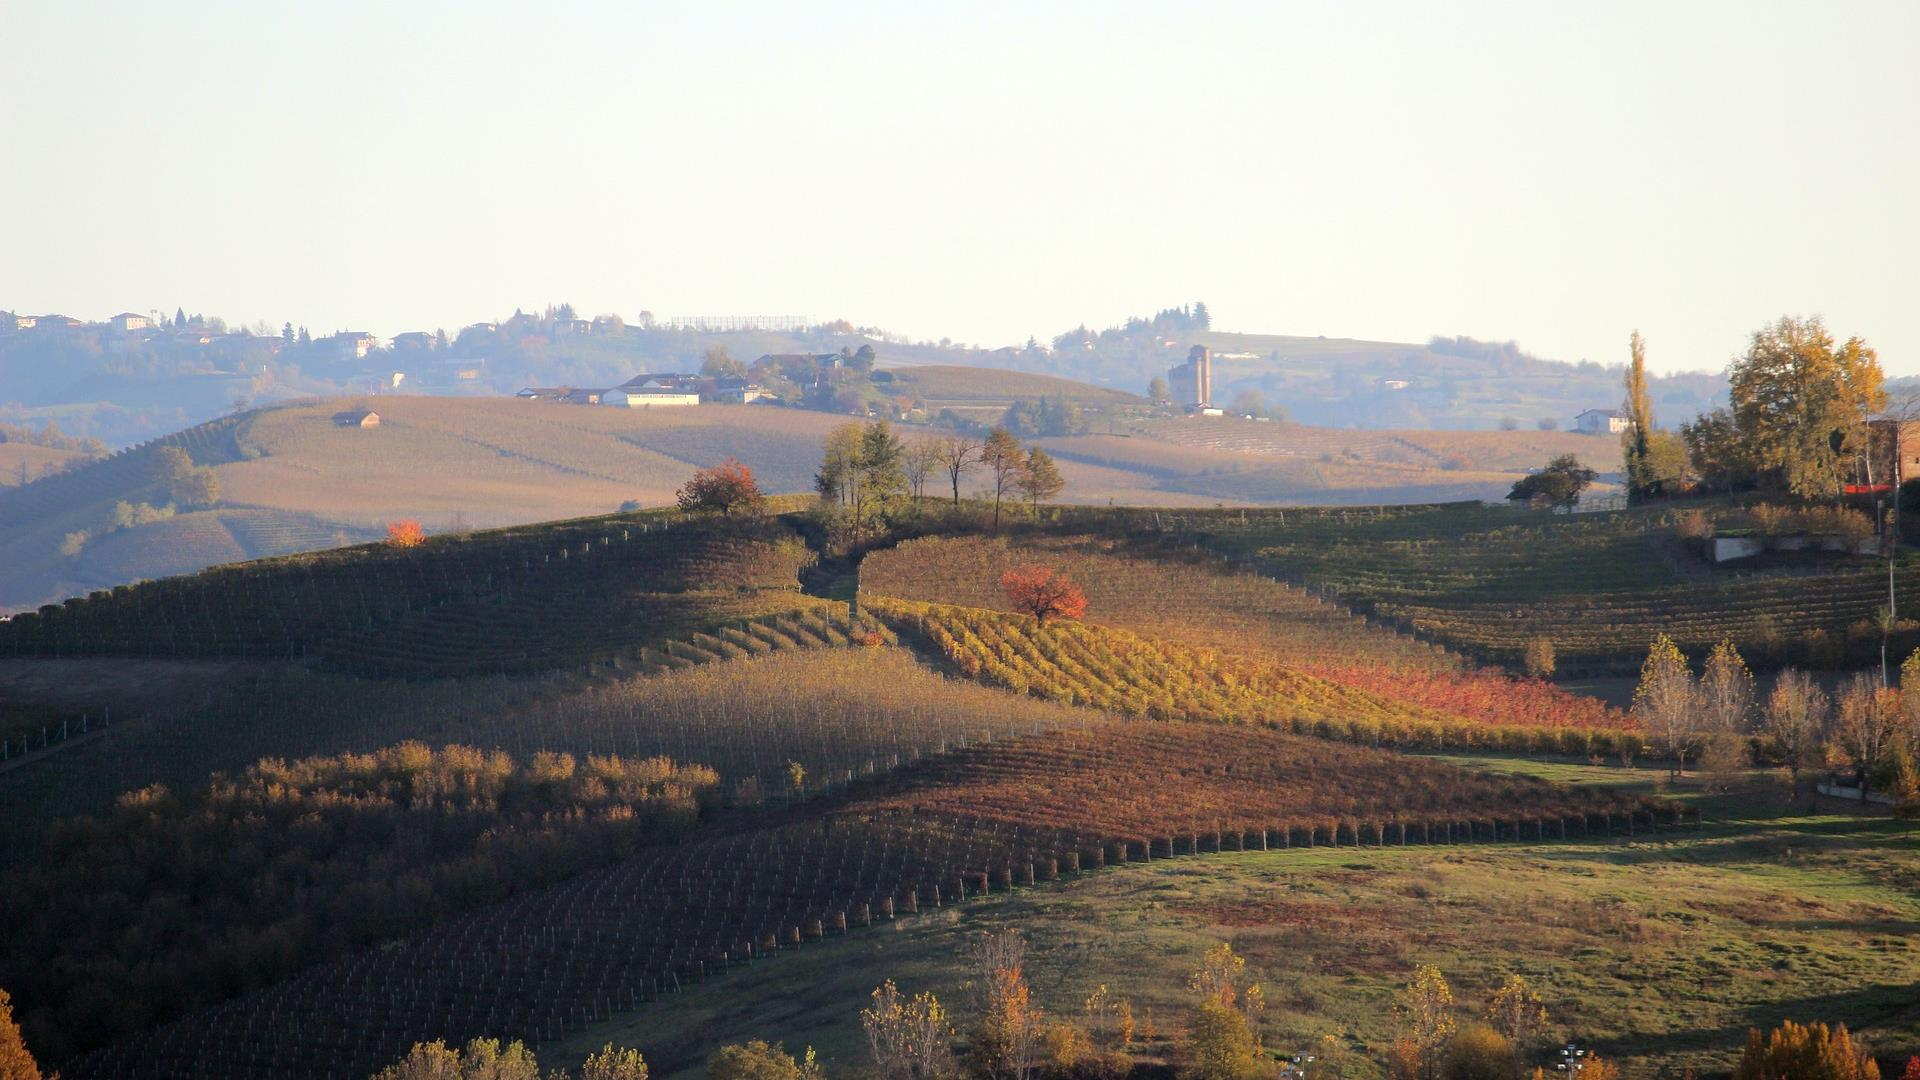 Langhe Image By Massimo Candela From Pixabay